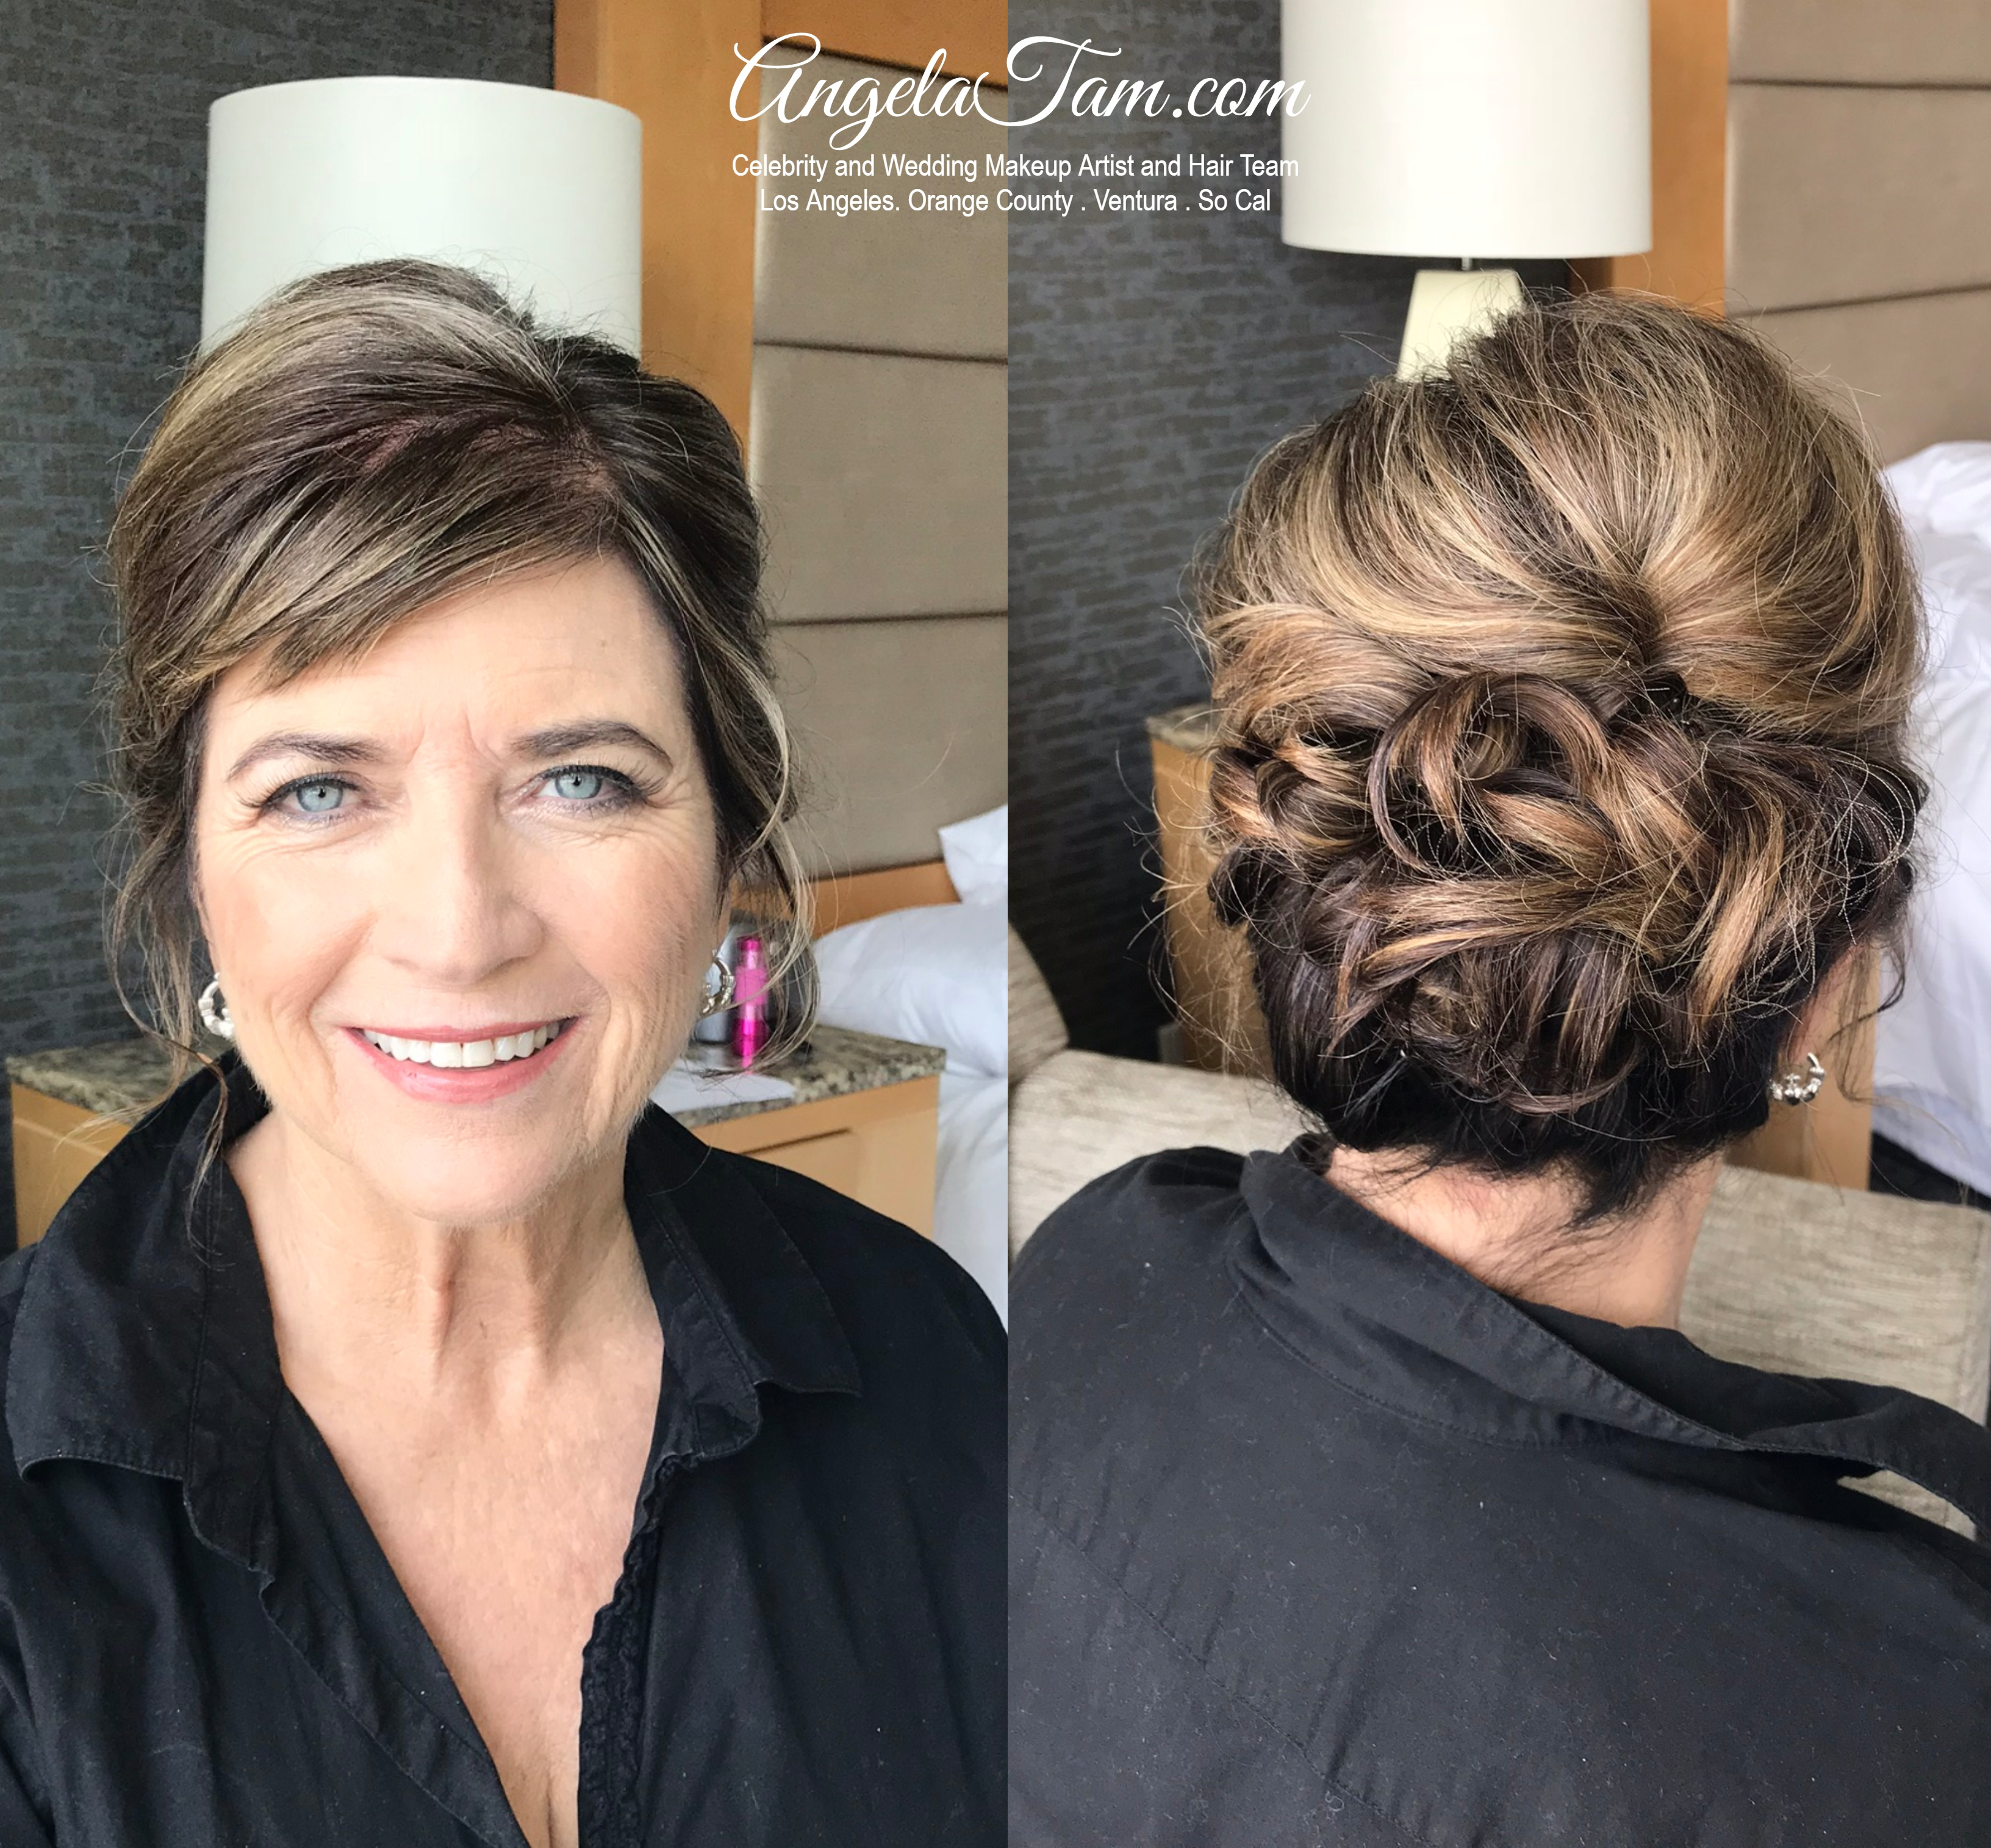 Caucasian Mob Make Up Short Hair Style By Angela Tam Los